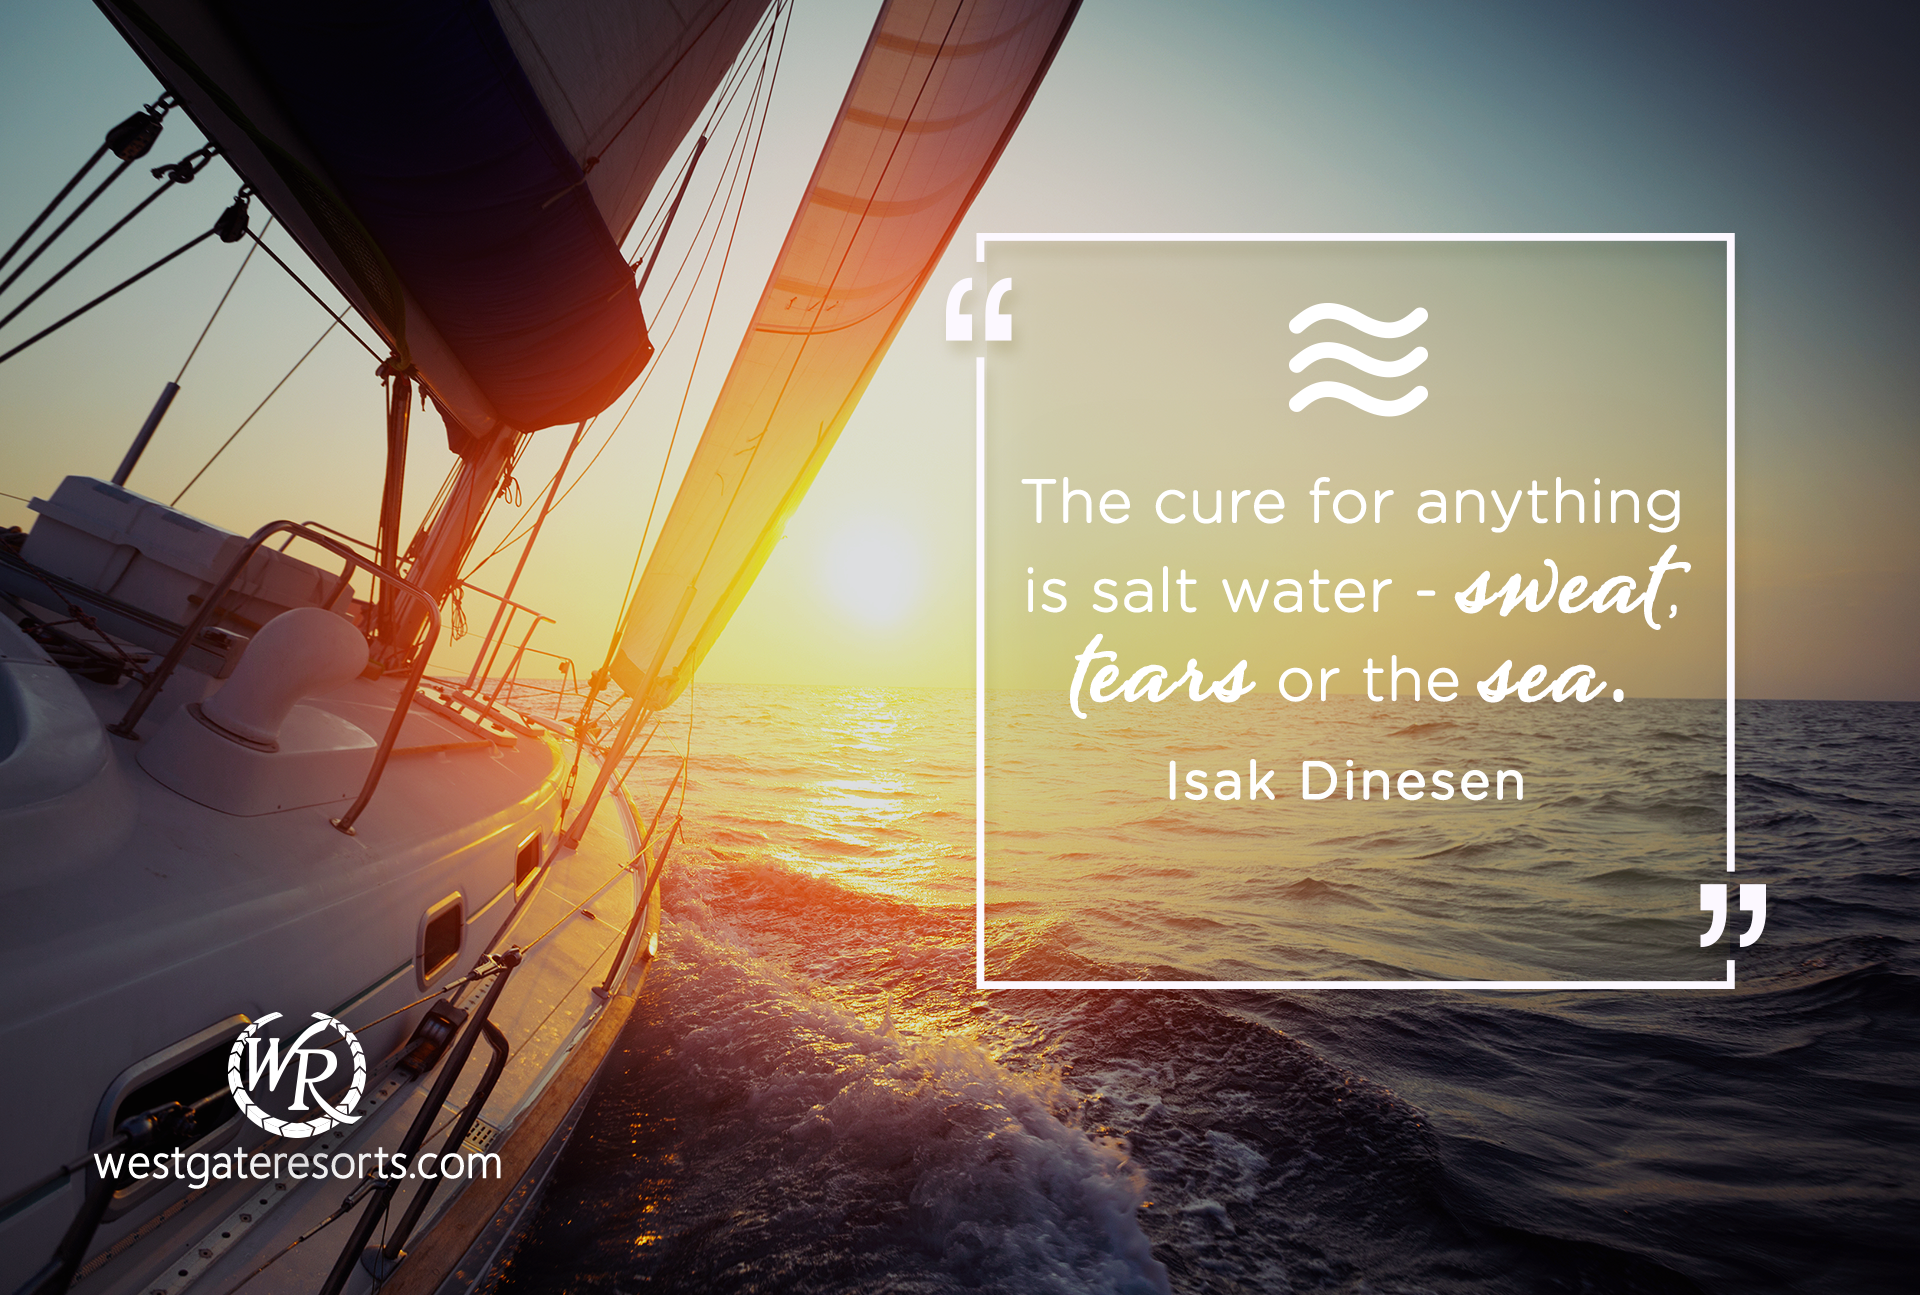 The cure for anything is salt water - sweat, tears or the sea | Isak Dinesen | Travel Motivational Quotes